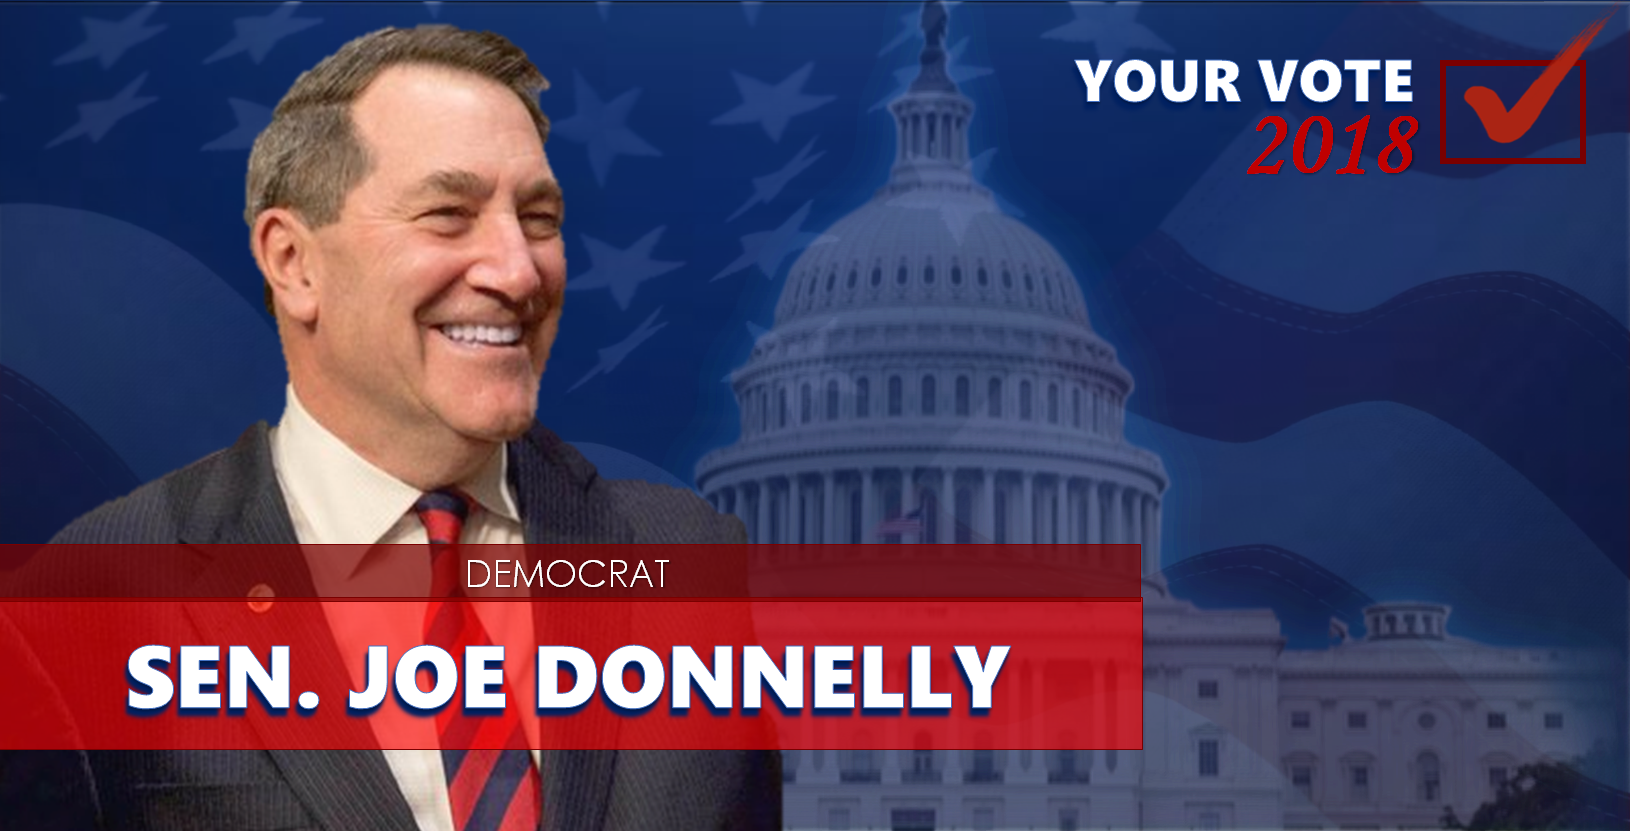 DONNELLY: